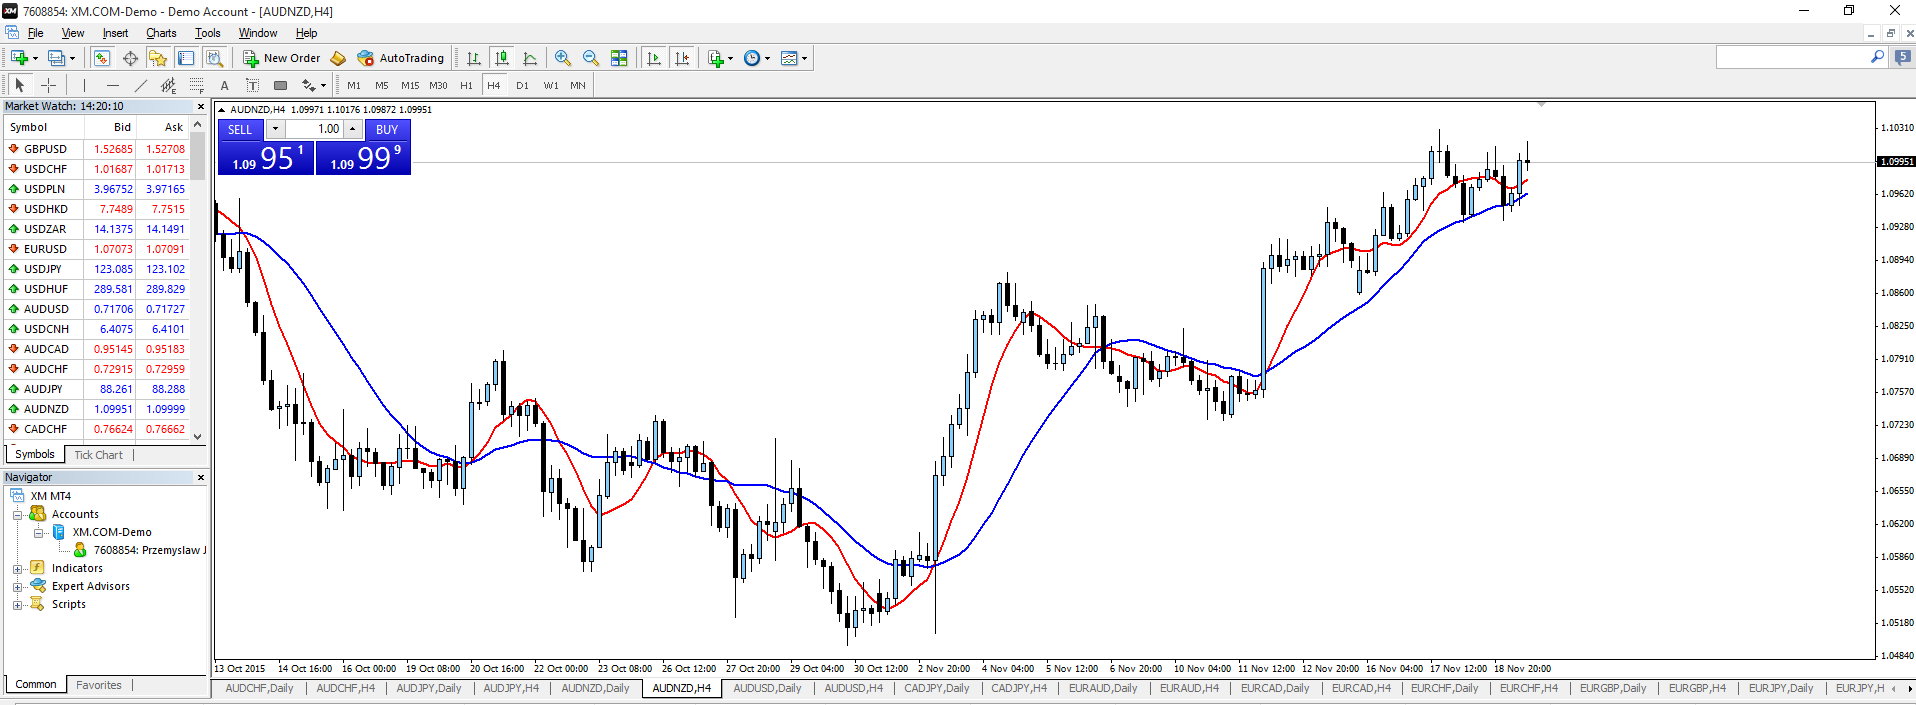 MetaTrader 4 - Tutorial 2